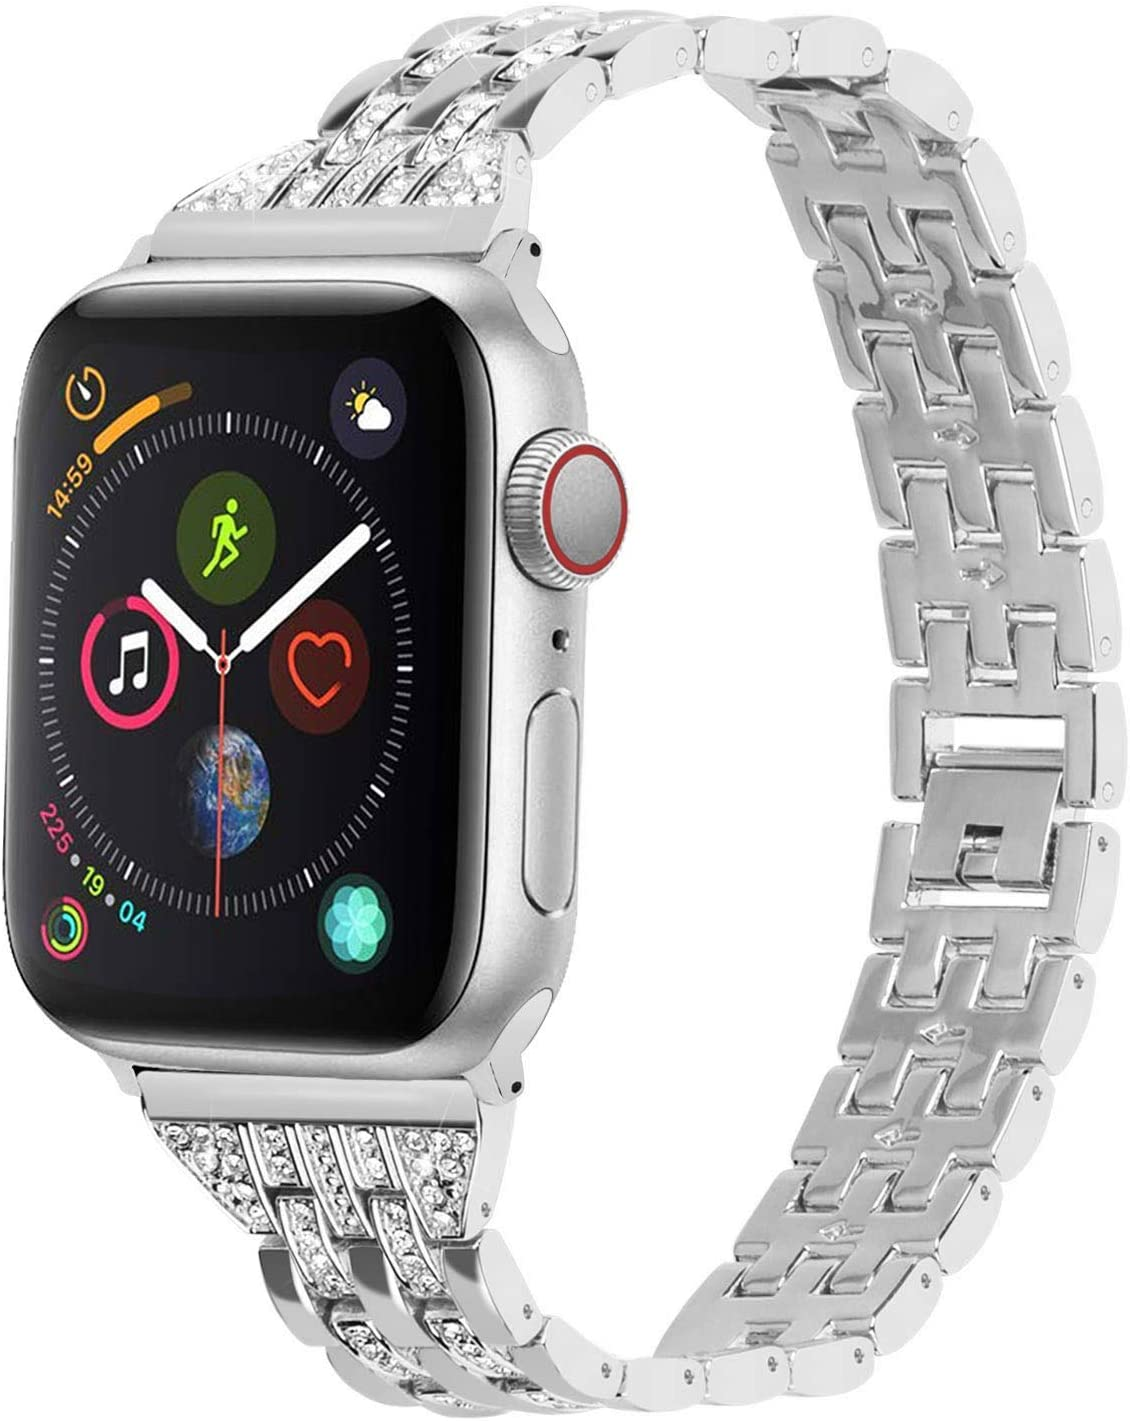 Apple Watch Band Compatible for Apple Watch 38mm 40mm 42mm 44mm with Watch Case, Fullmosa 3 Colors Quinte Alloy iWatch SE&Series 6/5/4/3/2/1 Band with Rhinestone Bracelet